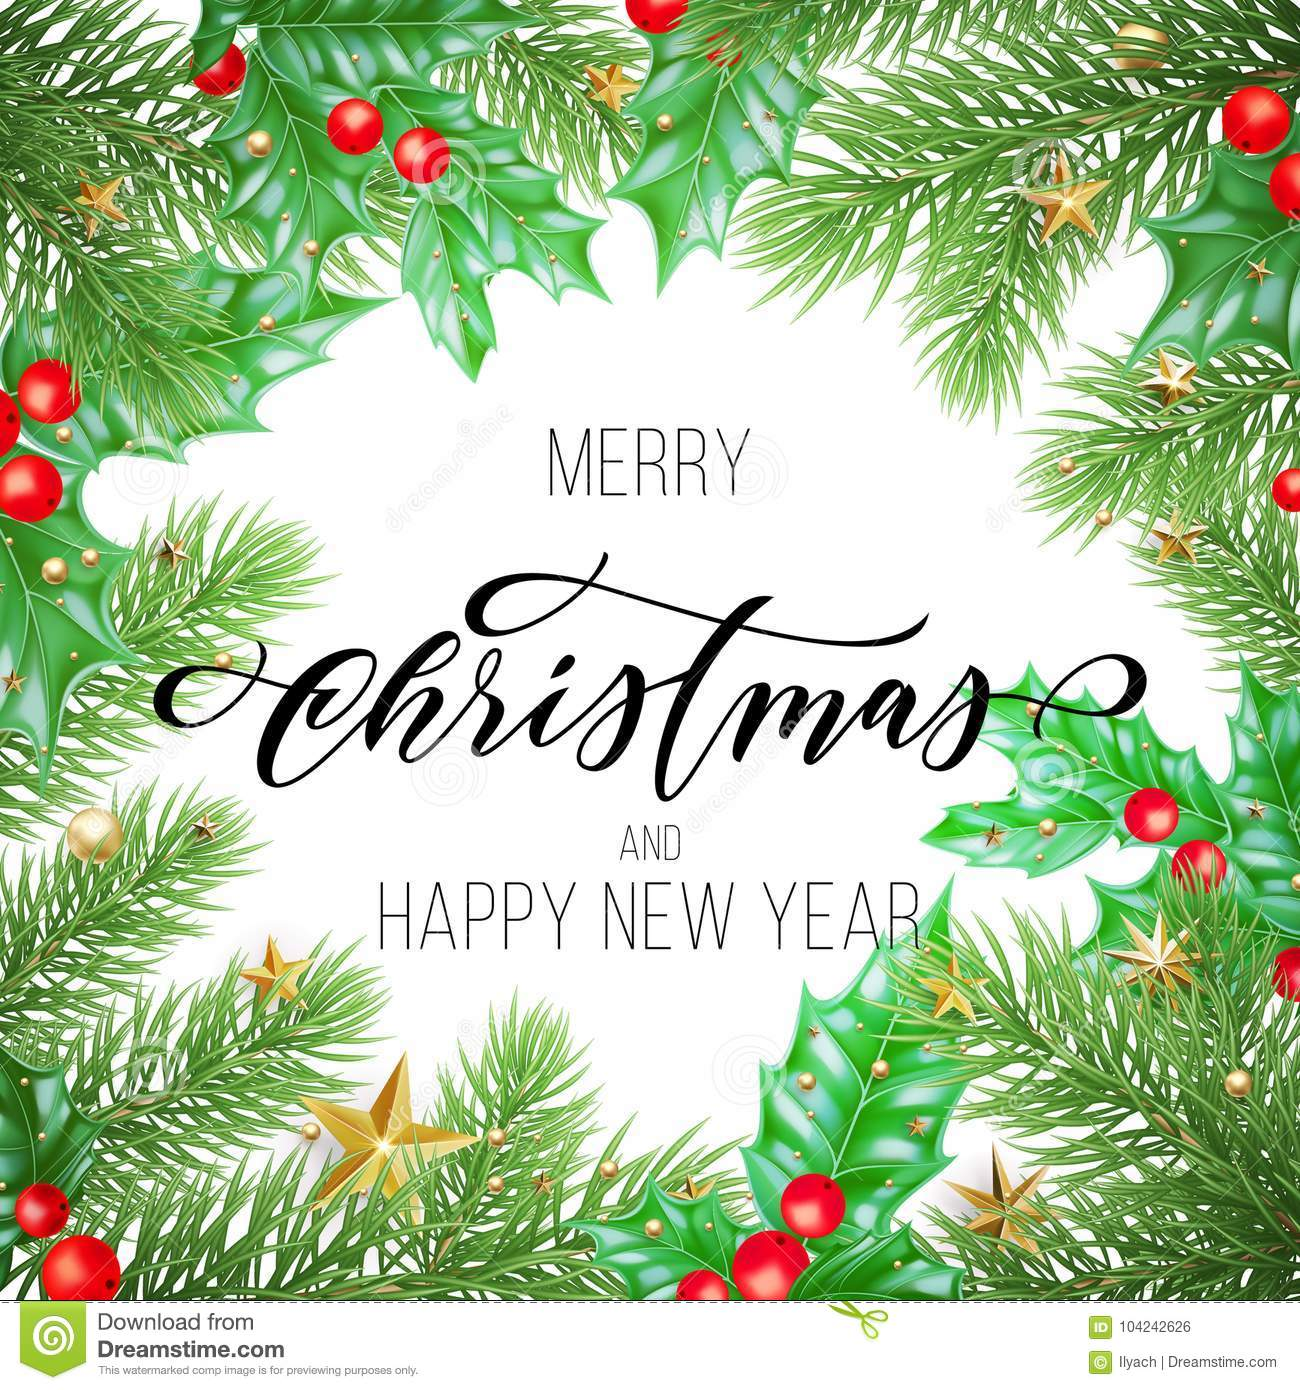 Merry Christmas And Happy New Year Hand Drawn Quote Calligraphy On